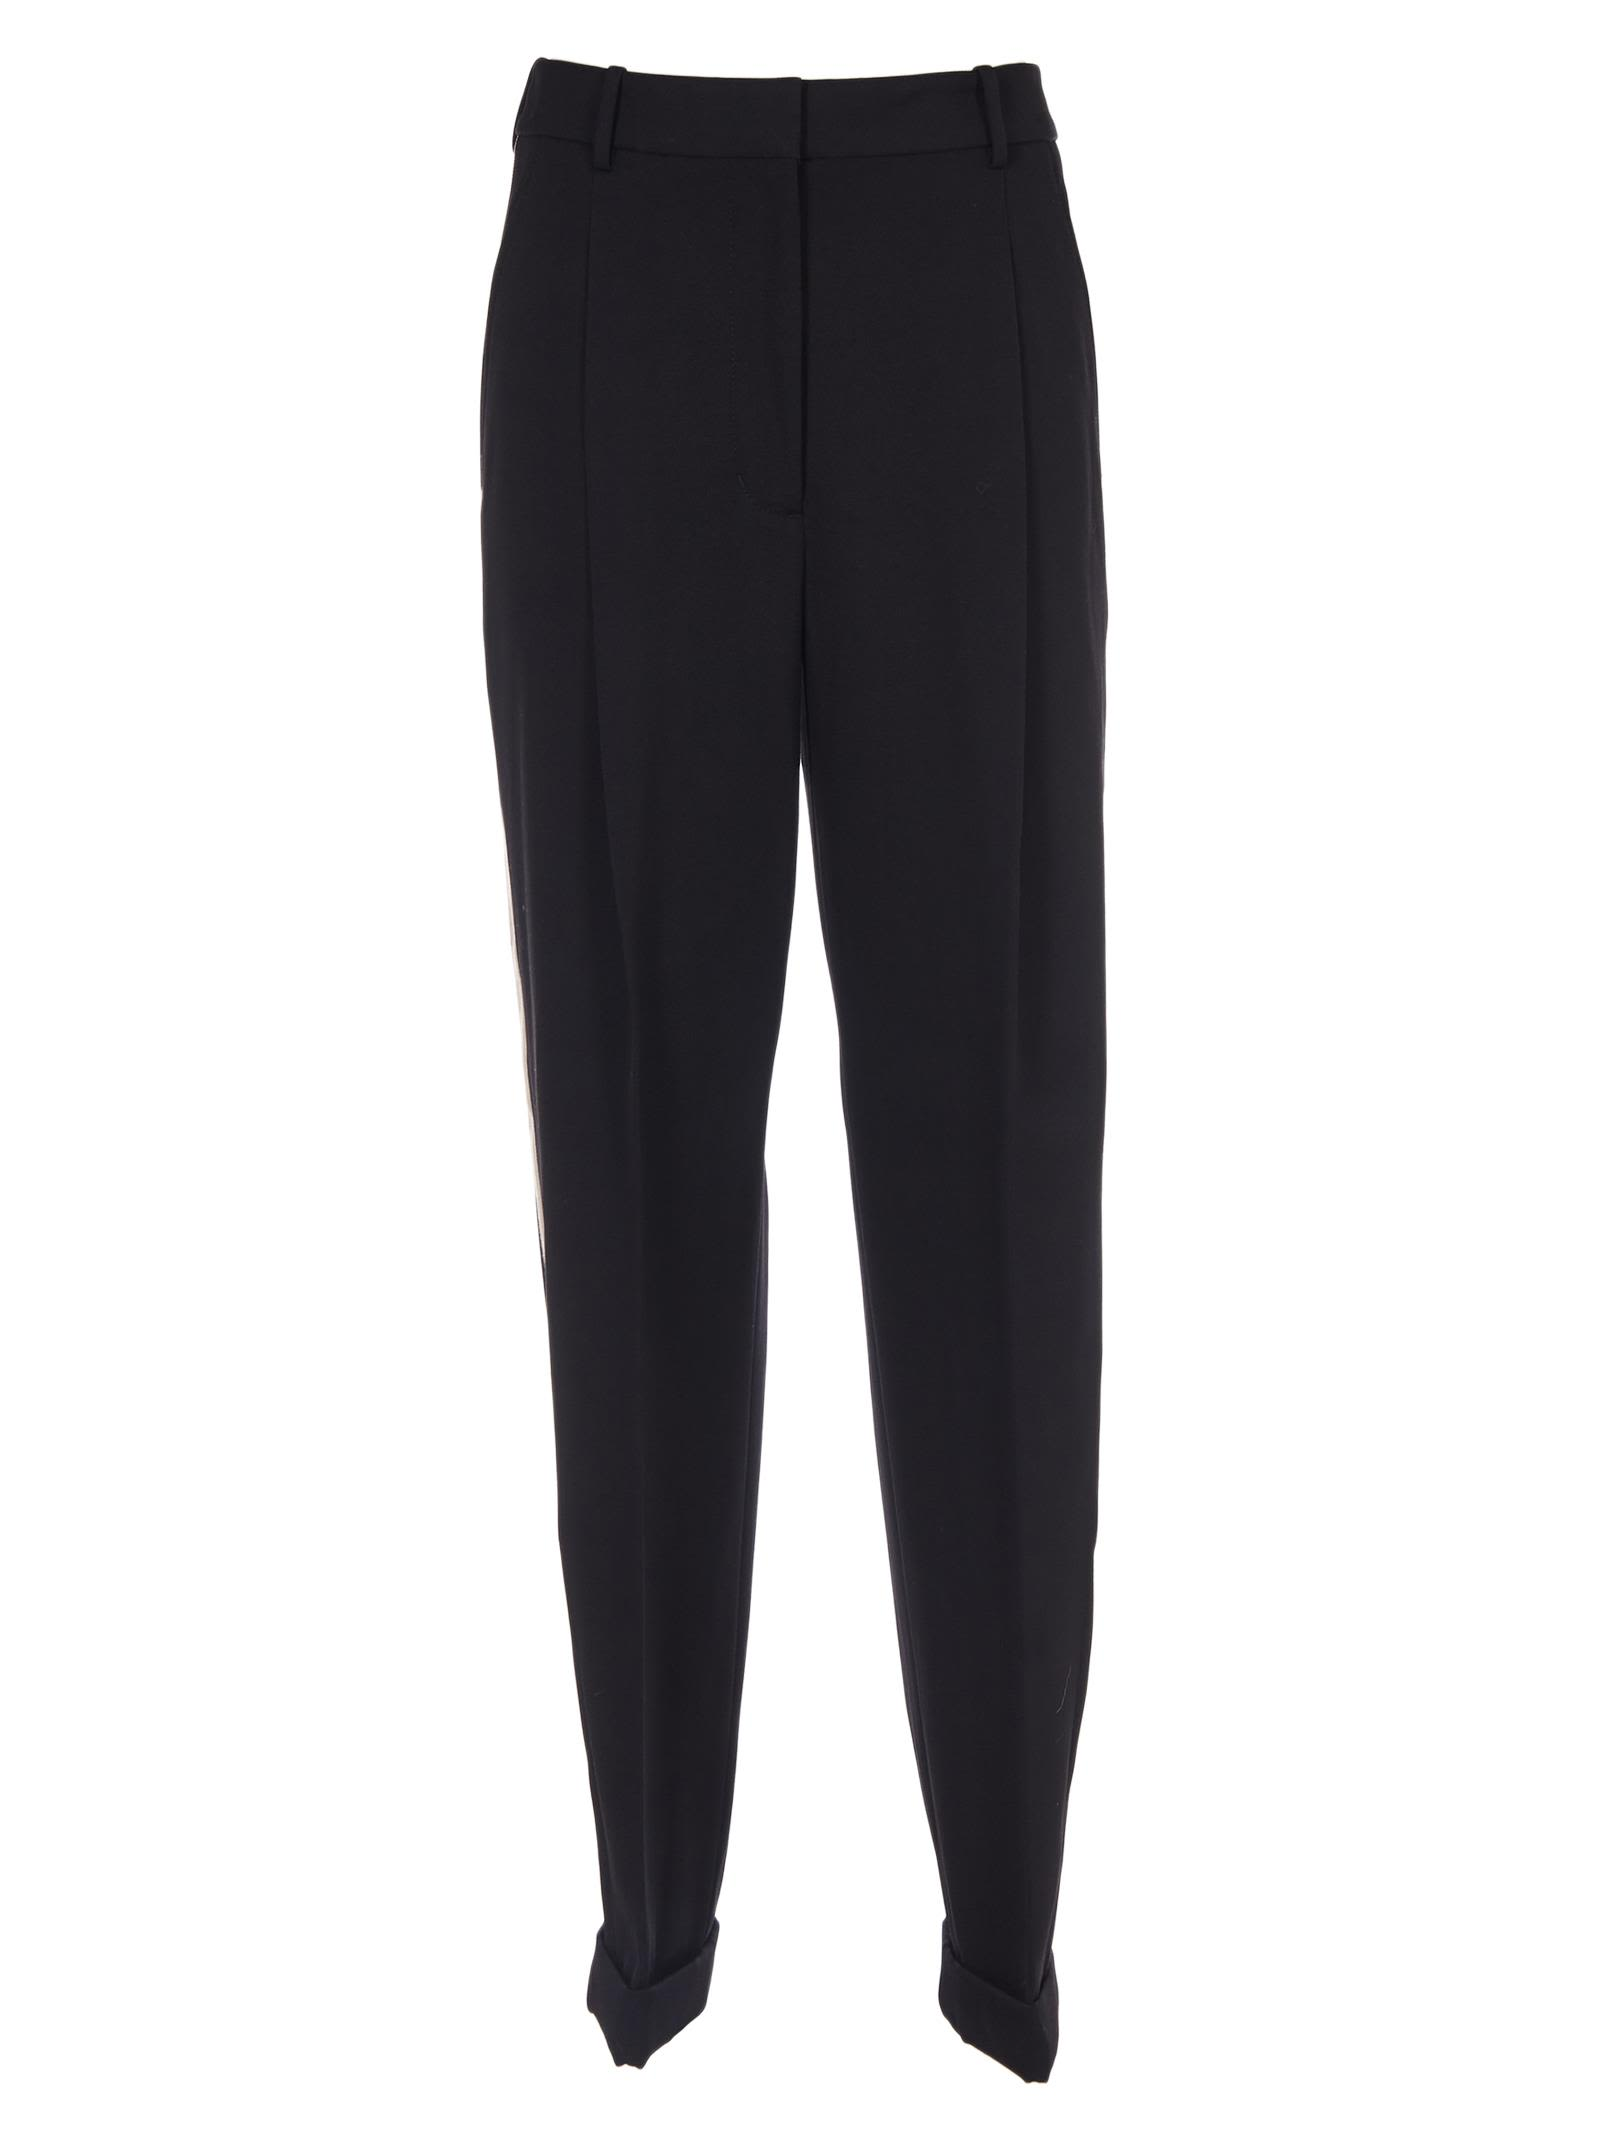 3.1 Phillip Lim Side Stripe Trousers